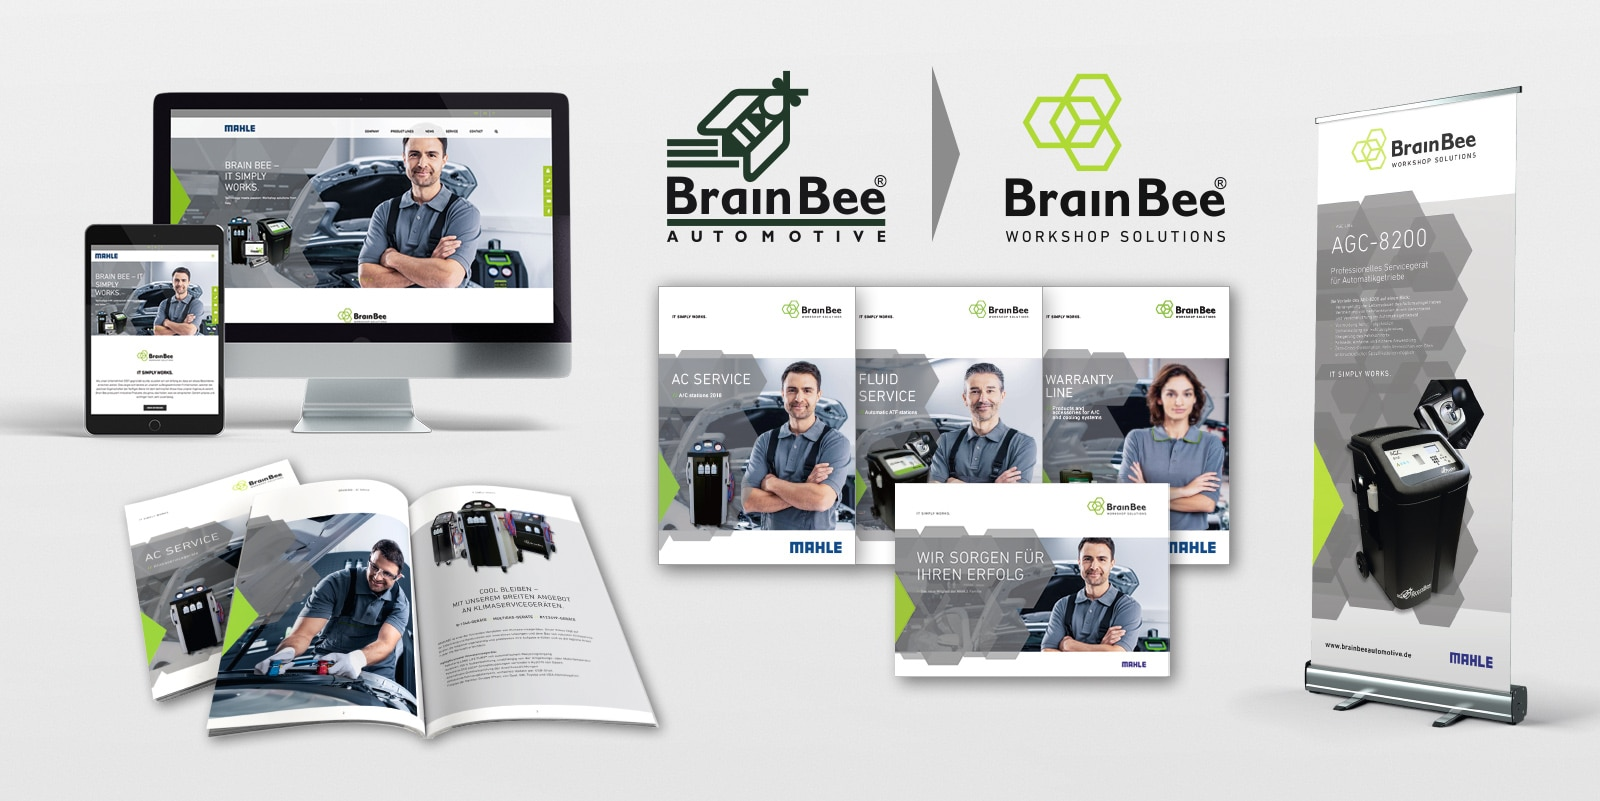 MAHLE – BRAIN BEE Marken-Relaunch